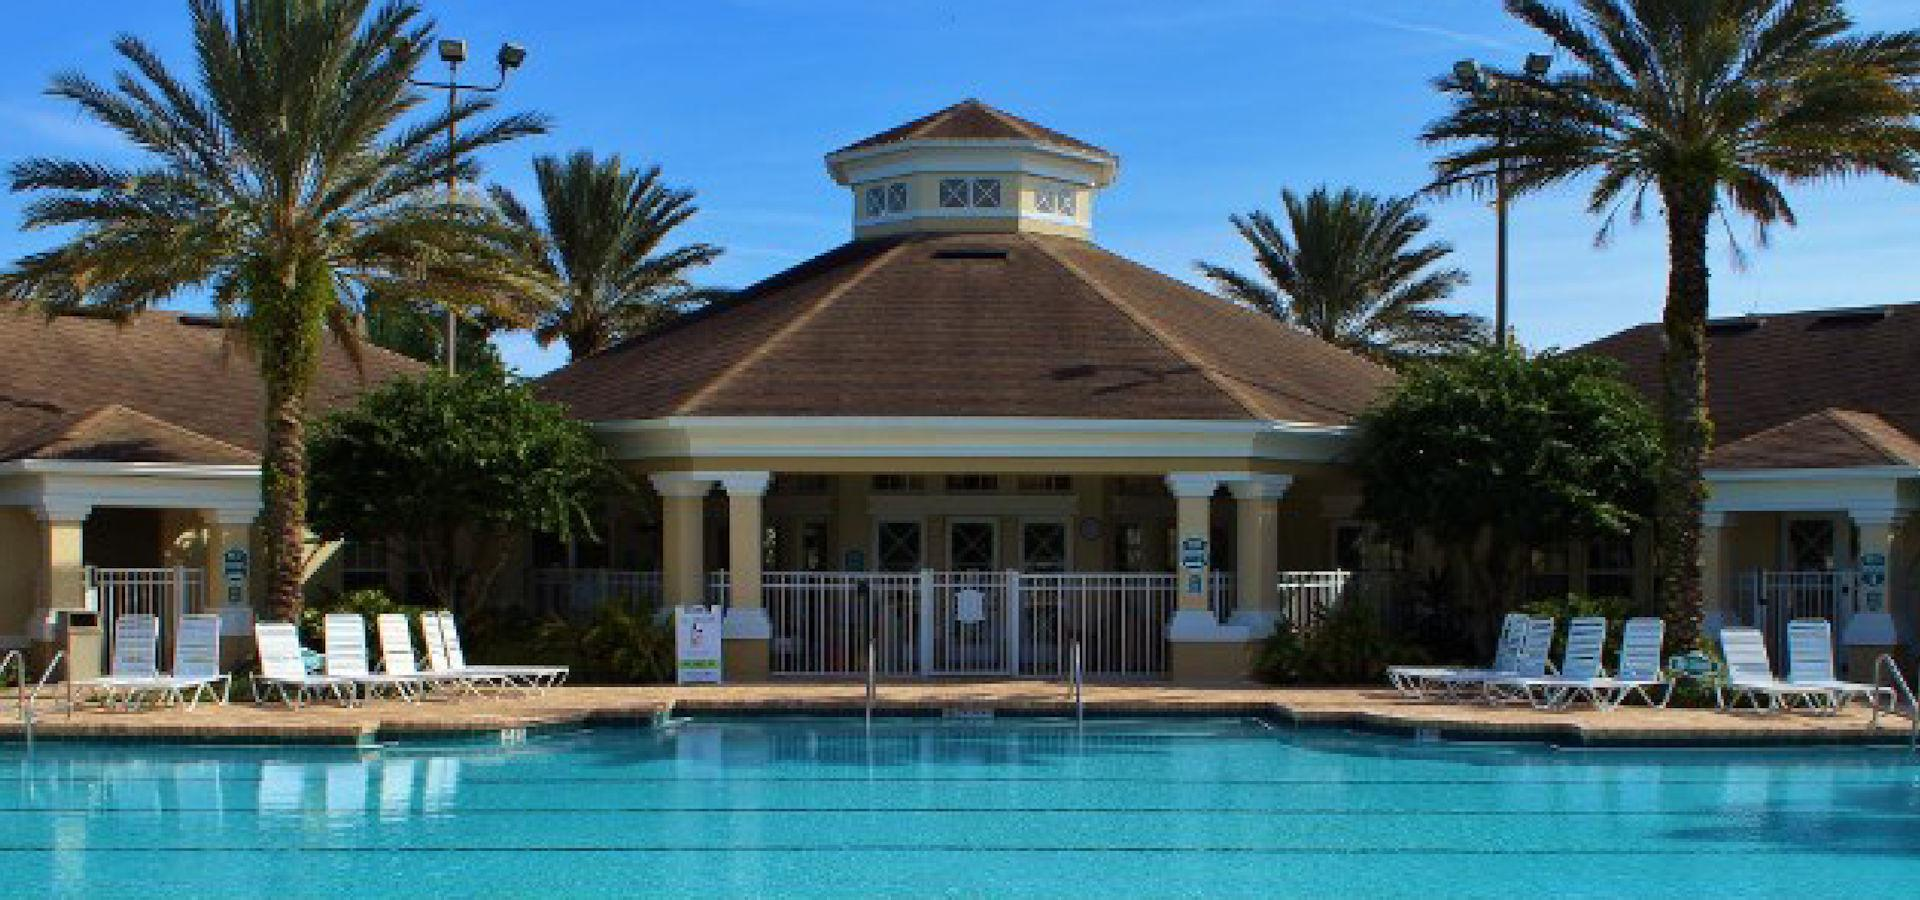 Windsor Palms Resort-style community of florida villas